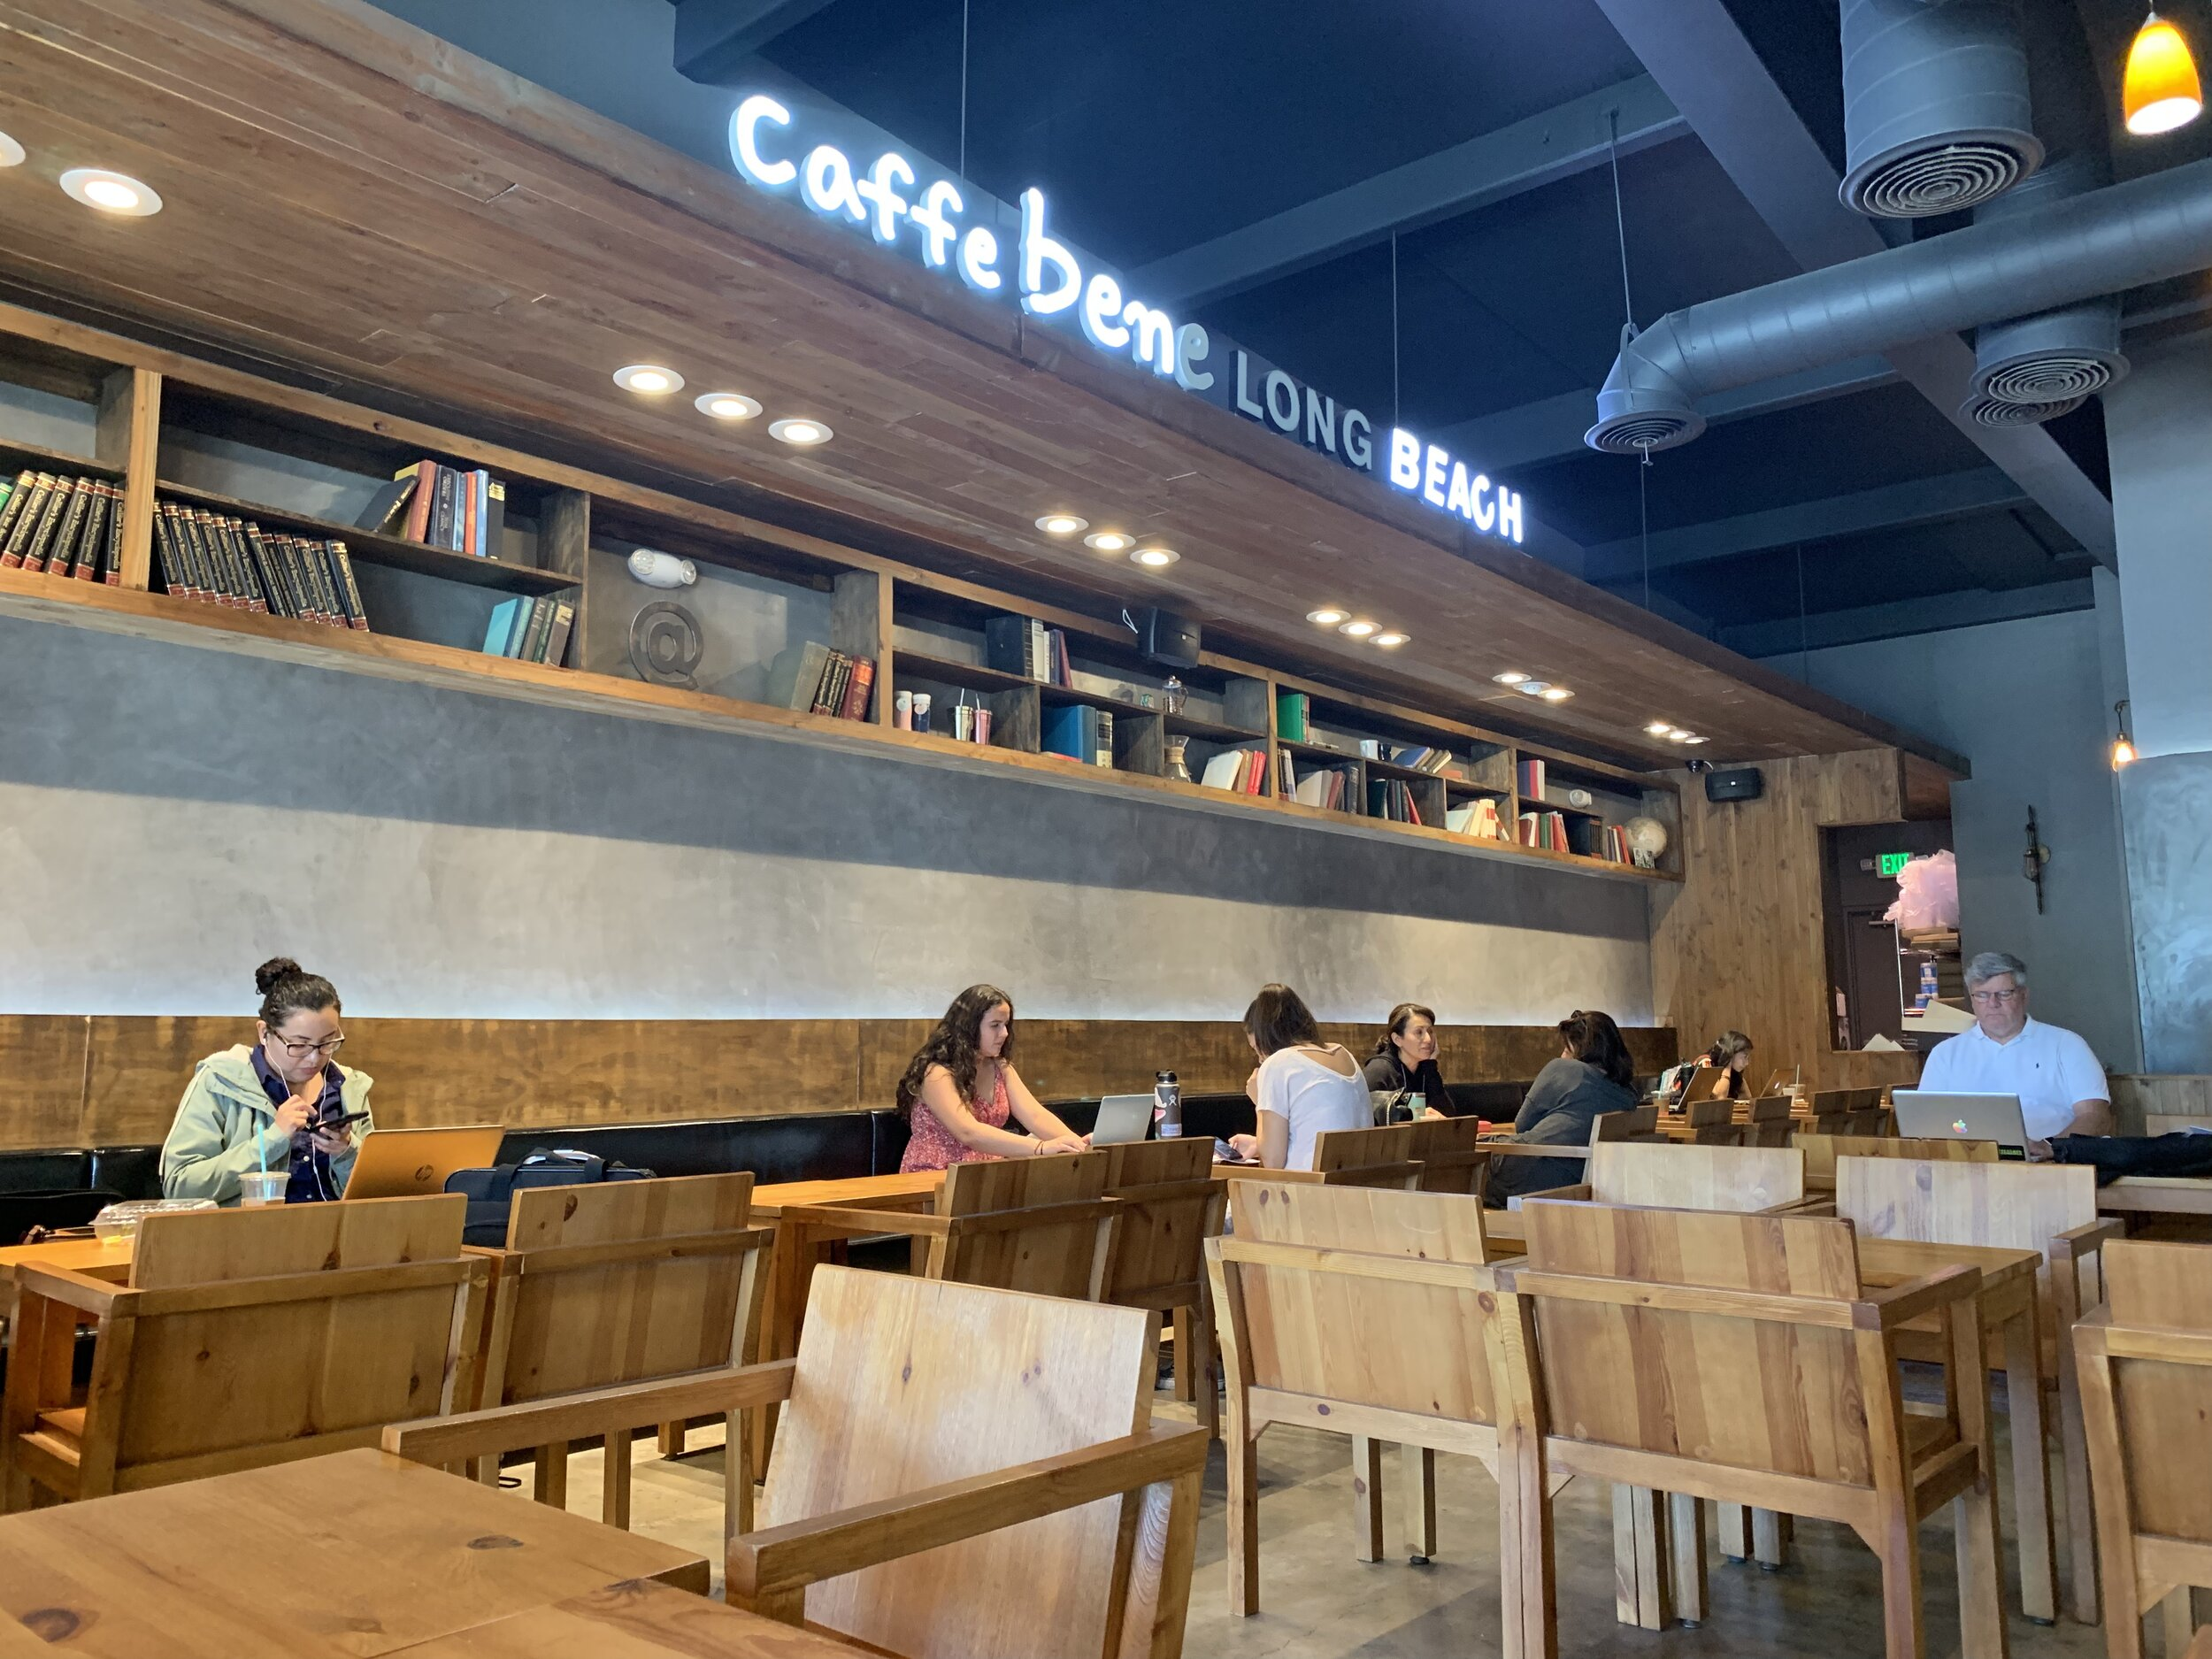 At Caffé Bene, abundant seating and a spacious interior will make all of your anxieties about finding a table disappear.